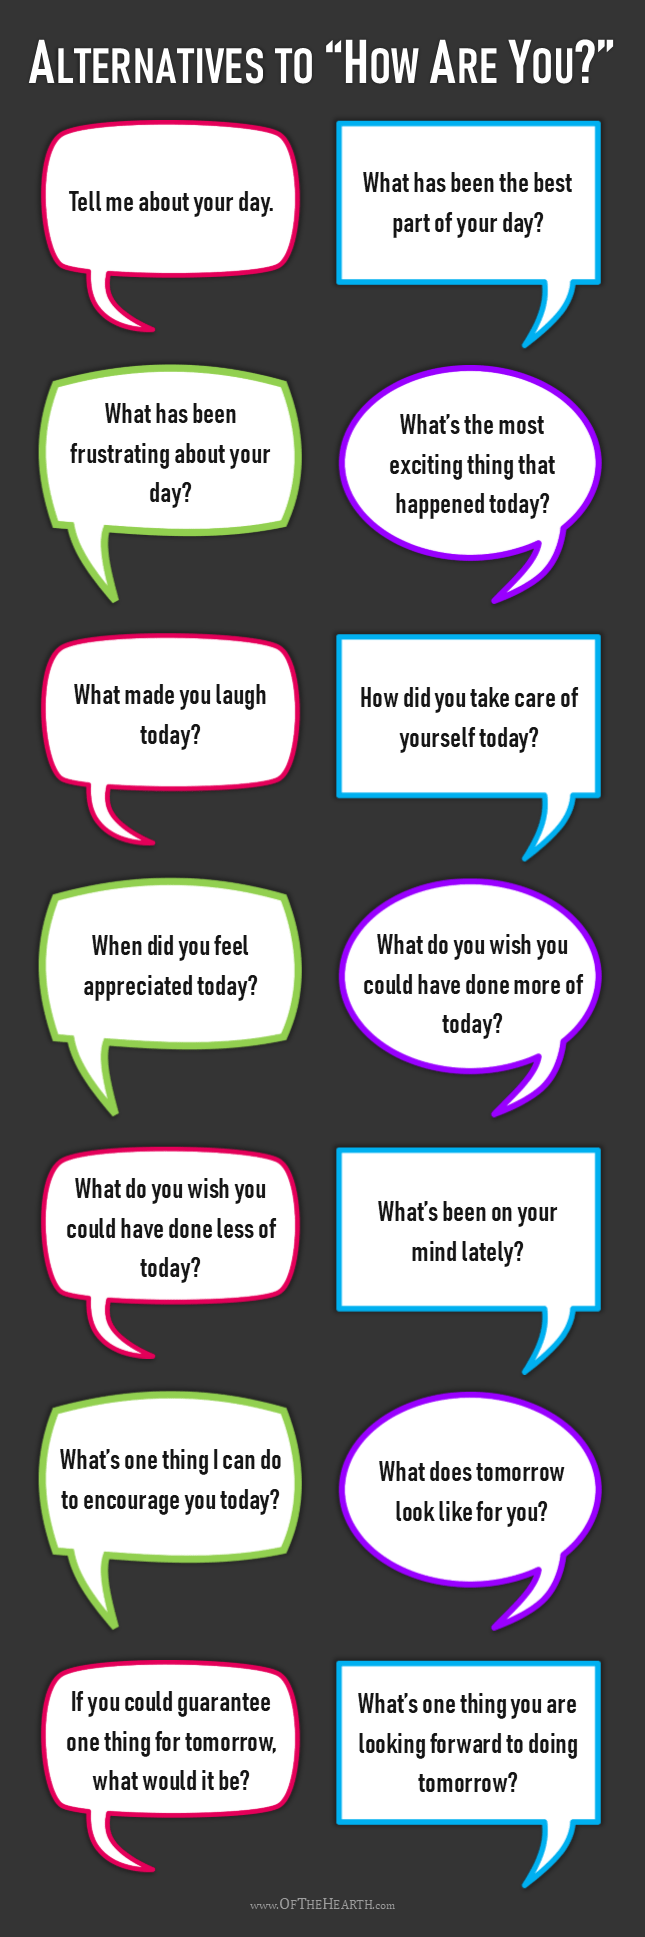 """14 Alternatives to """"How Are You?"""""""